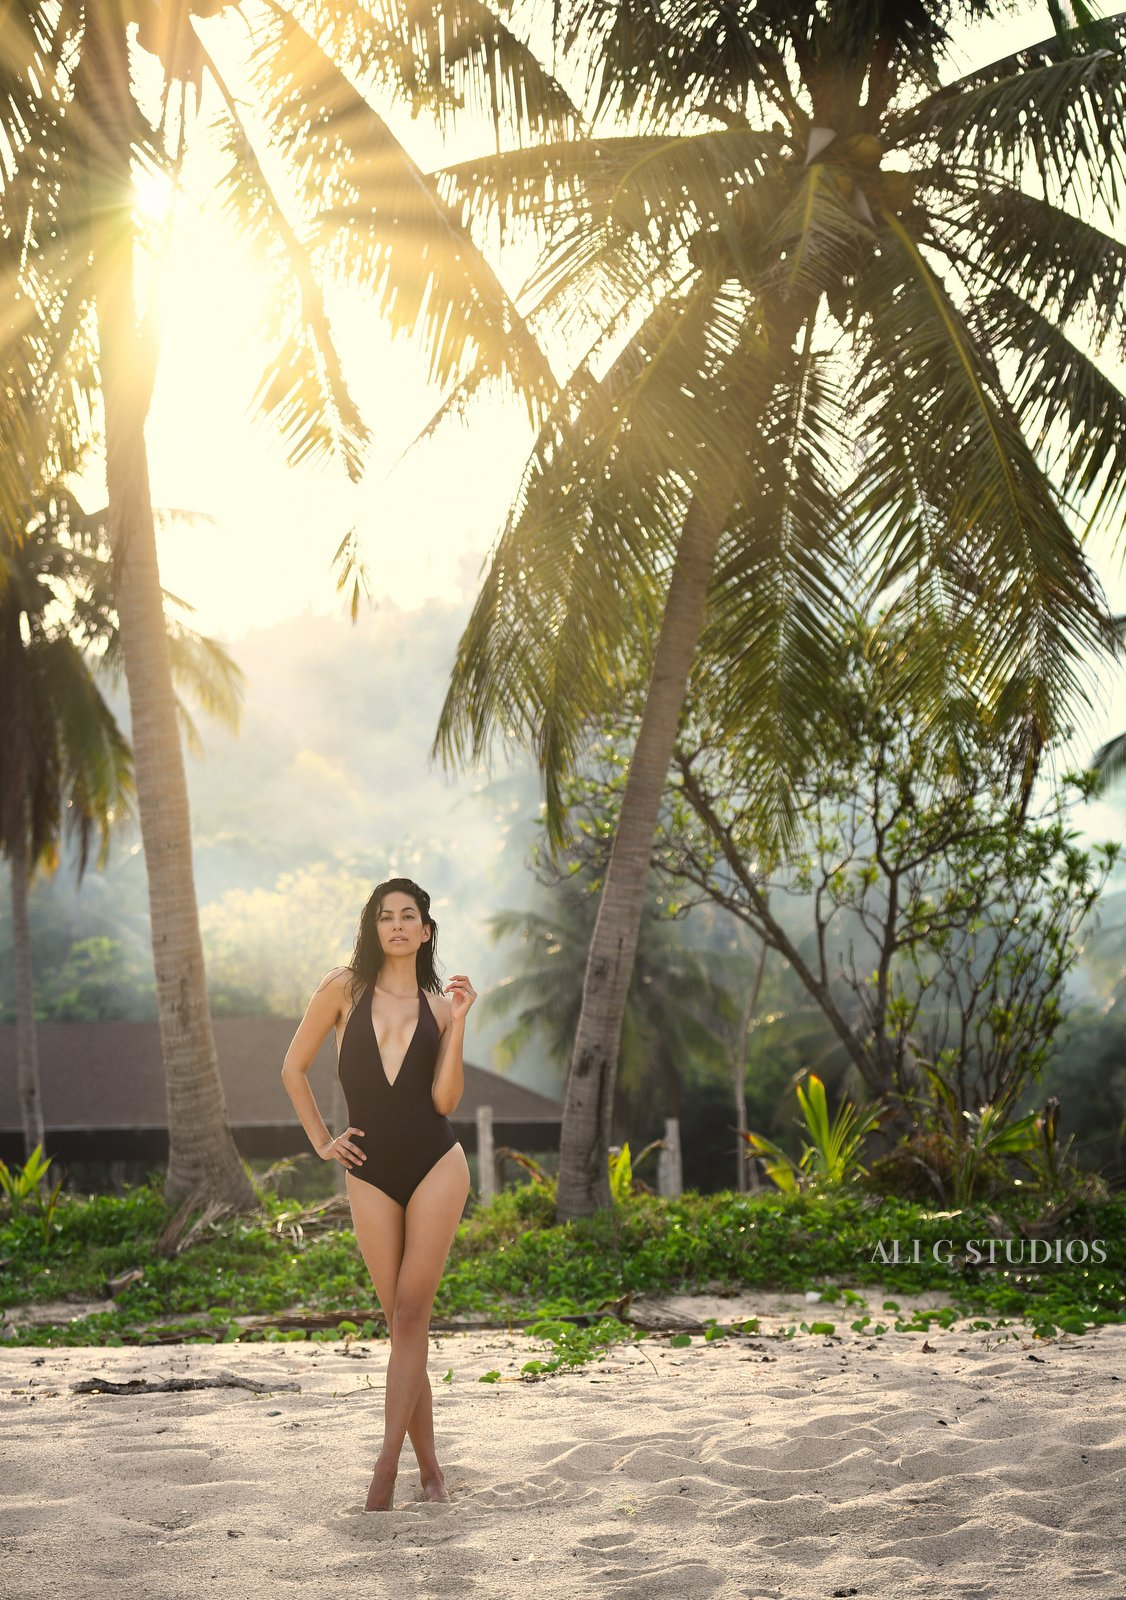 Swim suit editorial shot on the beach in Koh Samui, Thailand